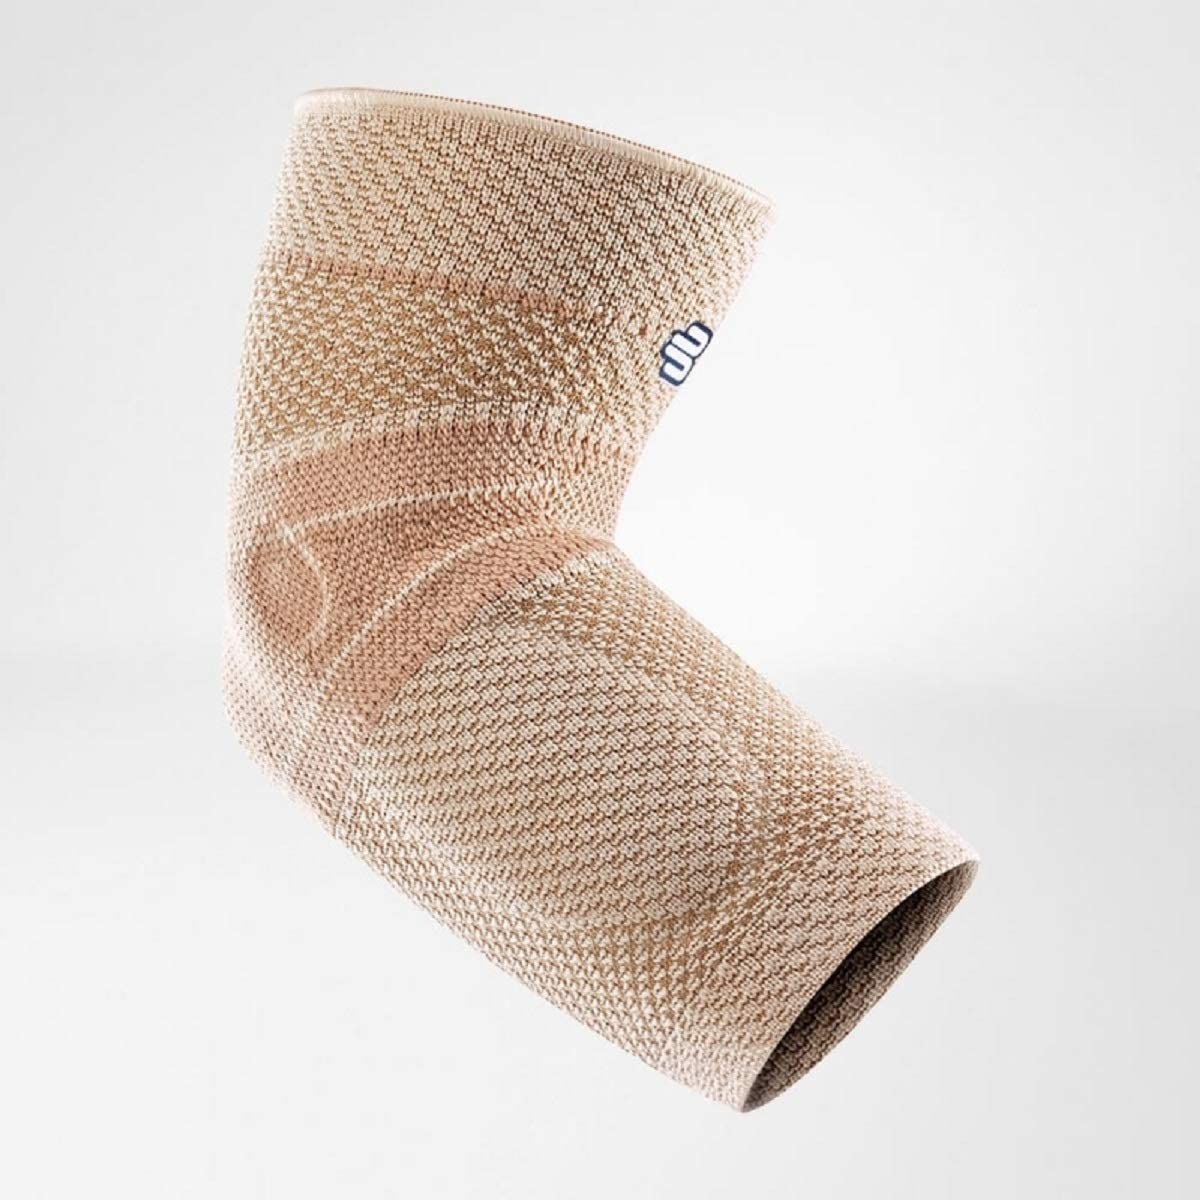 Bauerfeind - EpiTrain Elbow 大決算セール Support Br Breathable Knit 購入